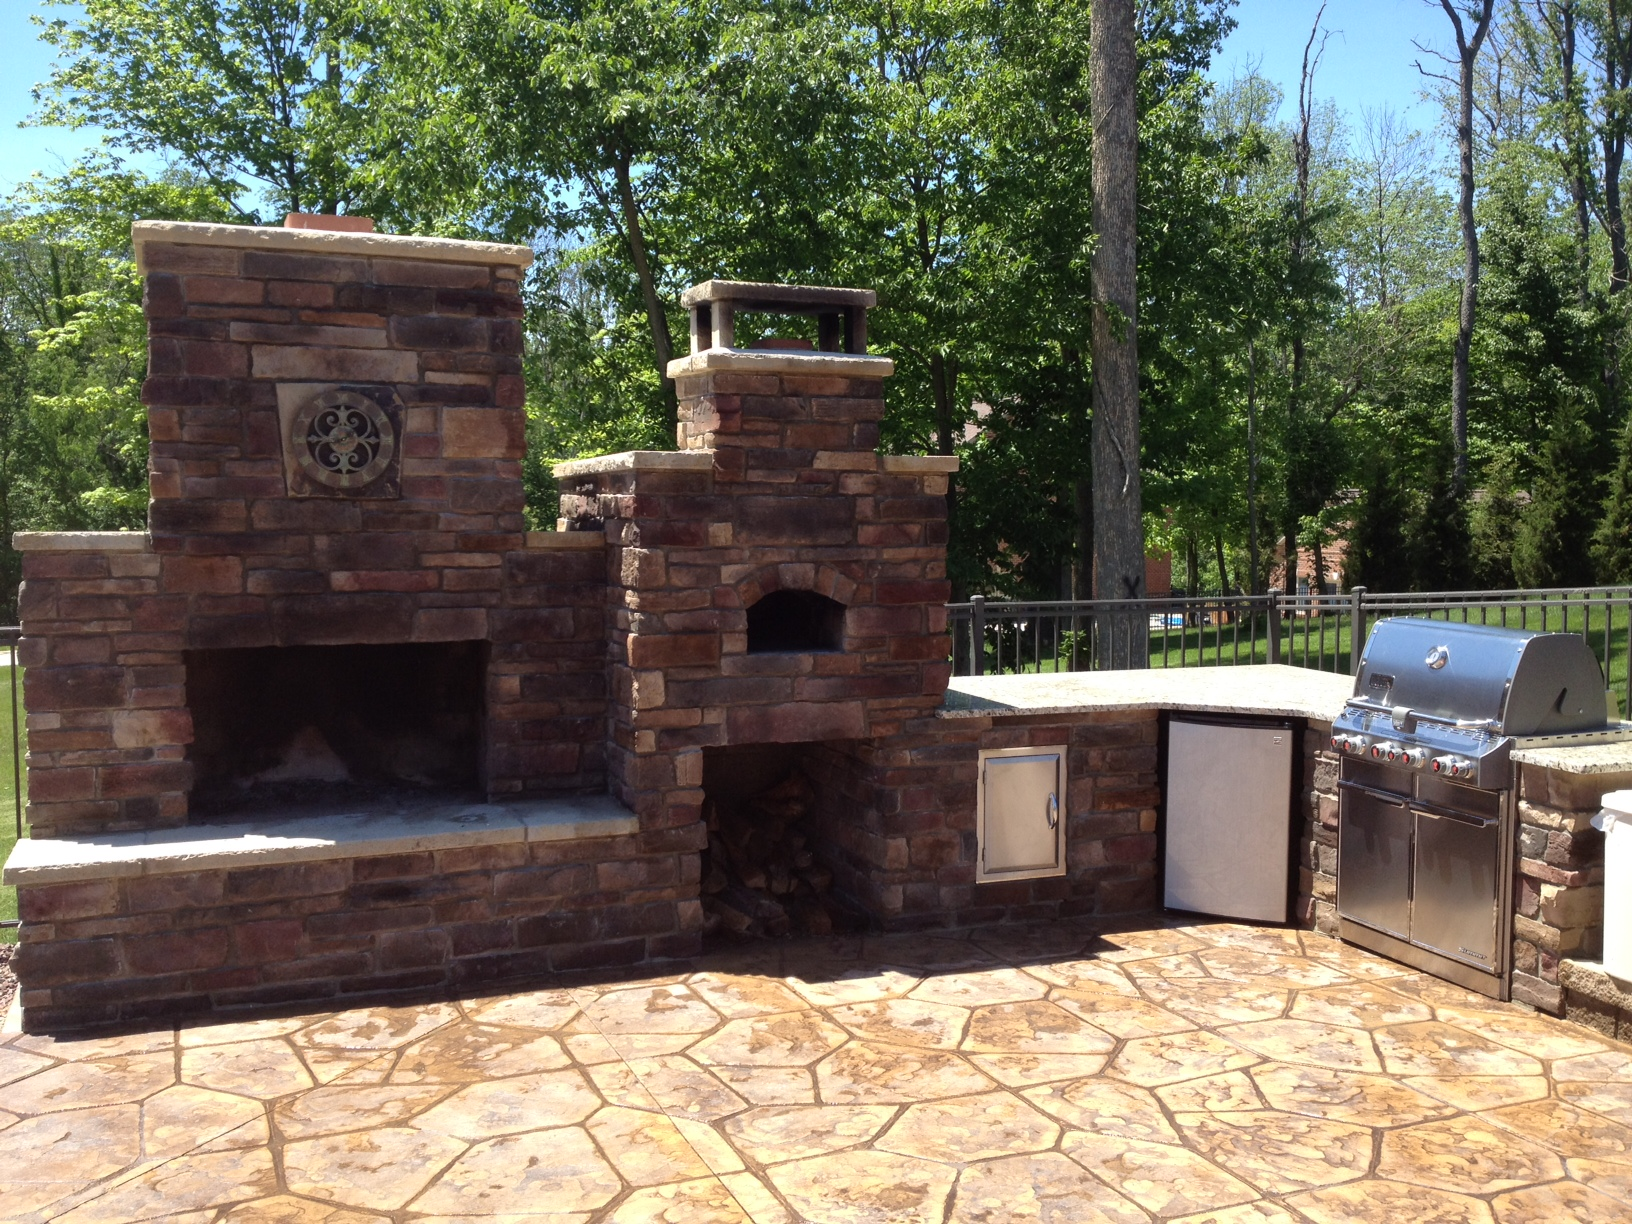 diy outdoor fireplace and pizza oven combos your diy outdoor fireplace headquarters. Black Bedroom Furniture Sets. Home Design Ideas